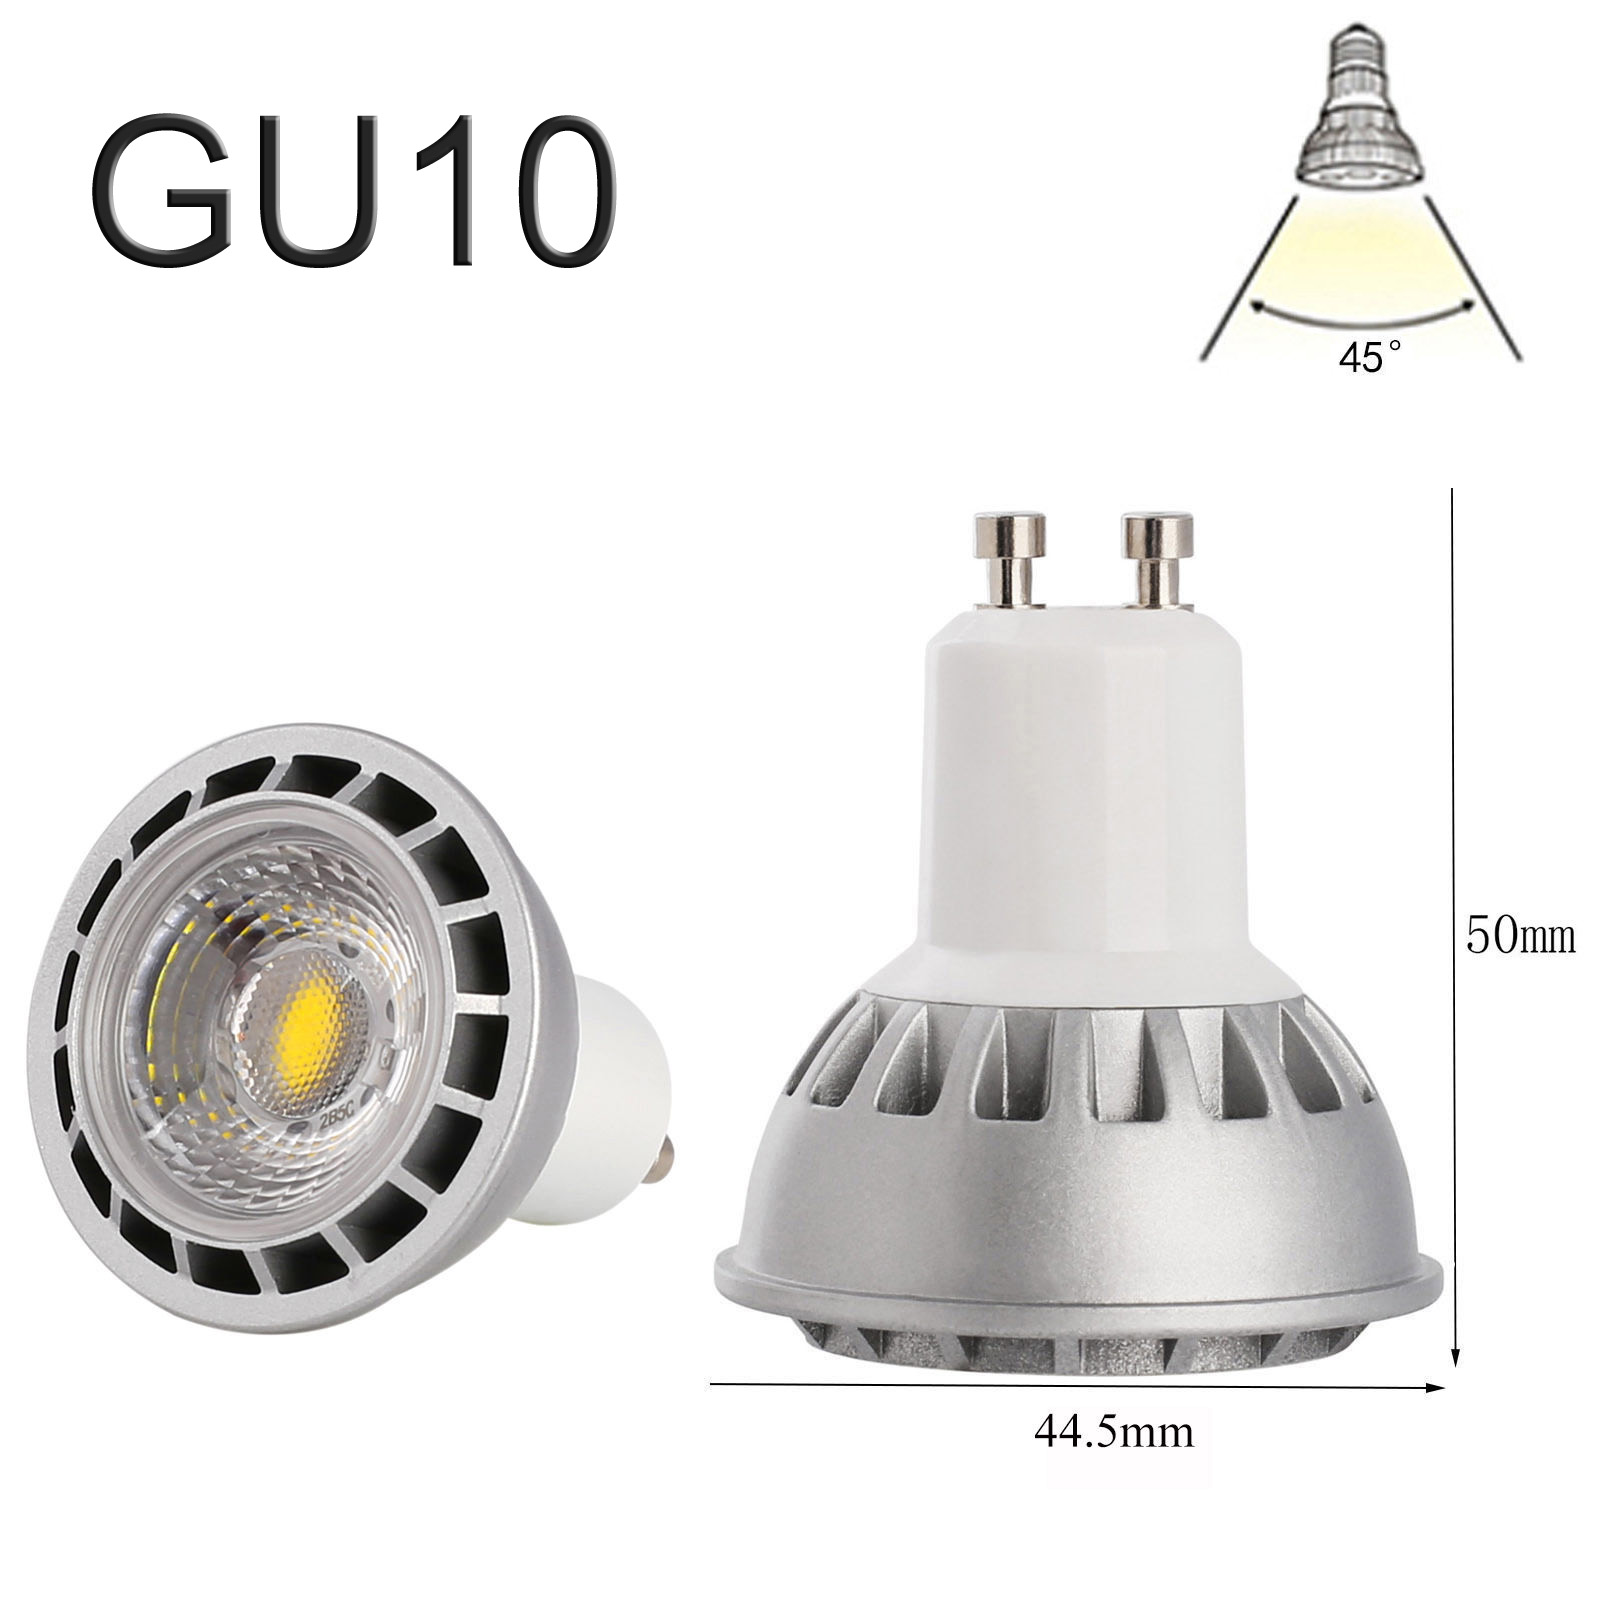 15w e27 gu10 mr16 e26 dimmable led spotlight cob lights bulb cree lamp ebay. Black Bedroom Furniture Sets. Home Design Ideas